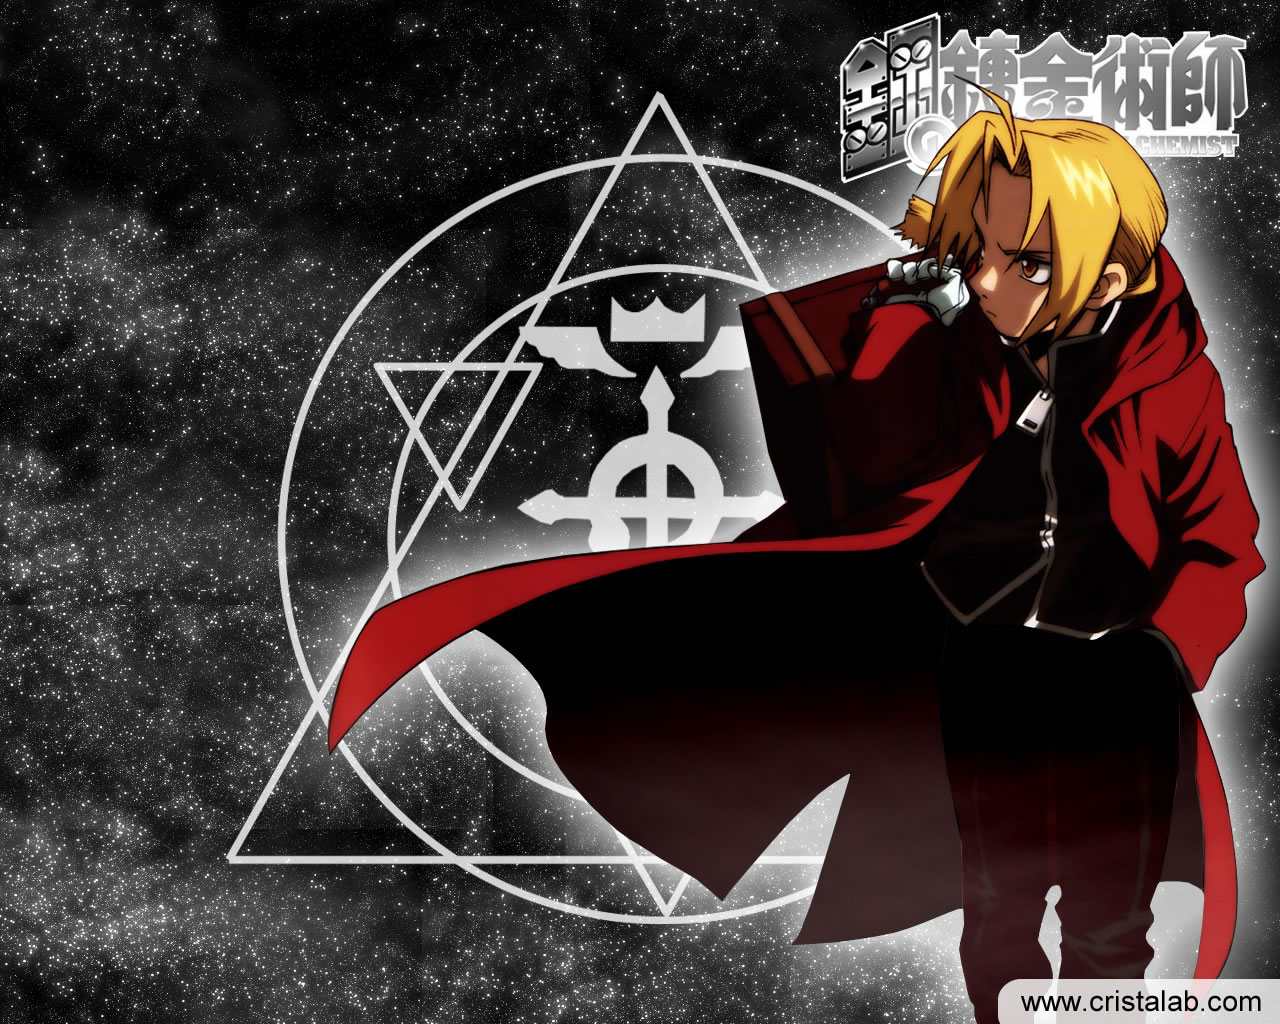 http://www.cristalab.com/images/anime/anime_wallpapers/fullmetal01_1280.jpg